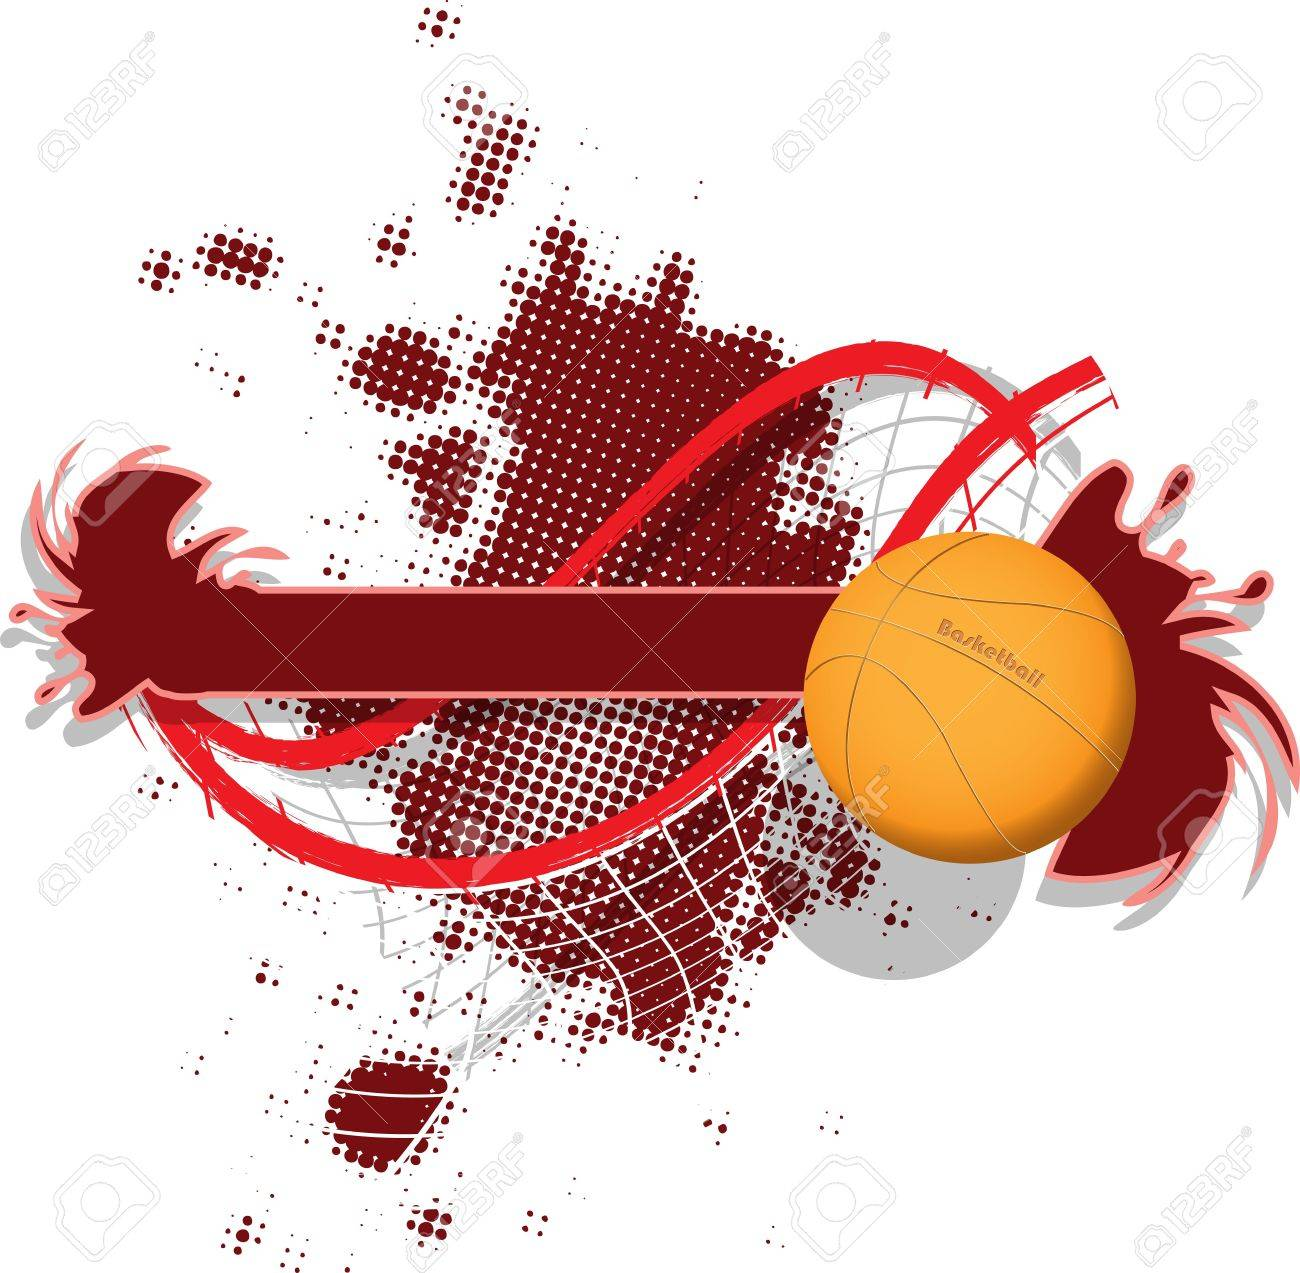 illustration of abstract sport background with a basketball.